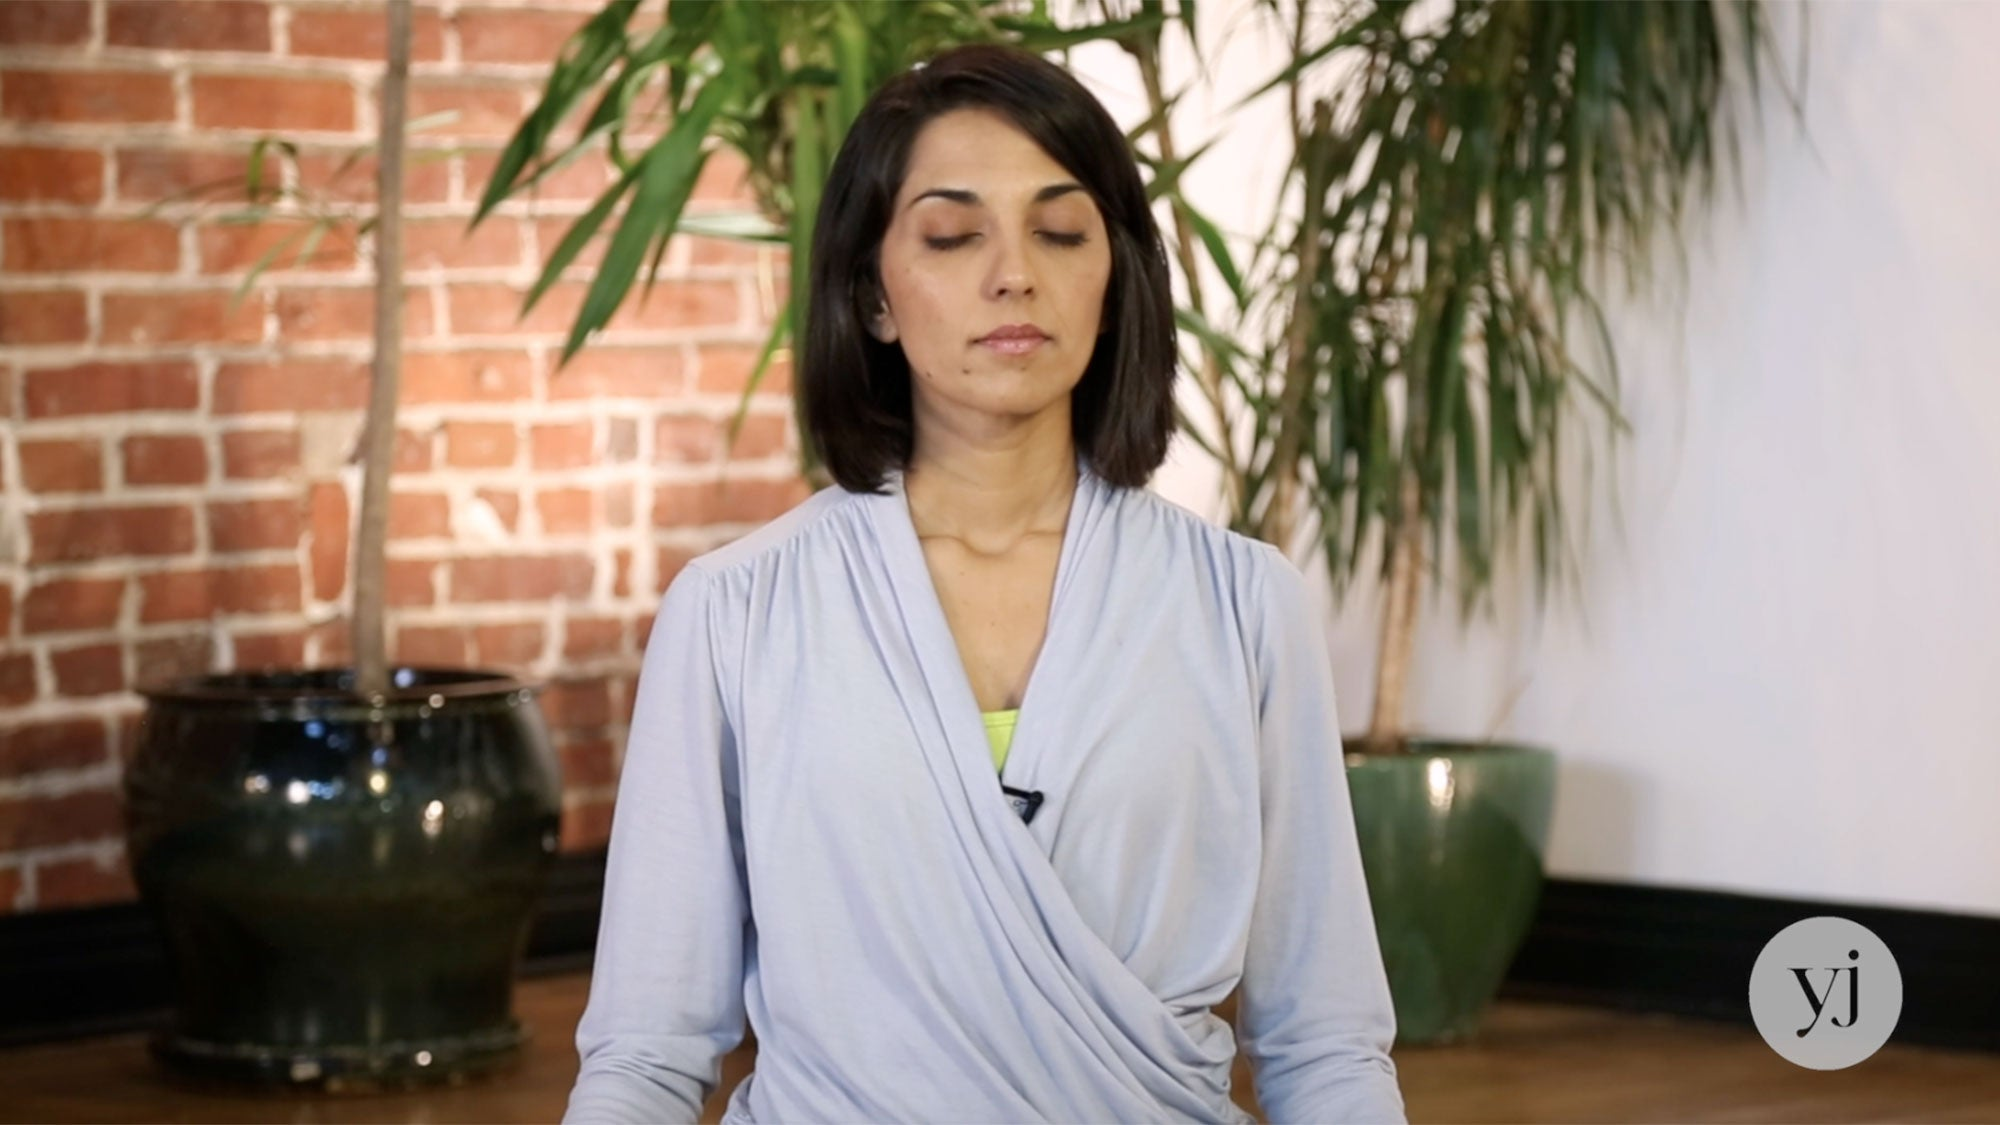 A 5-Minute Meditation to Release Anxiety